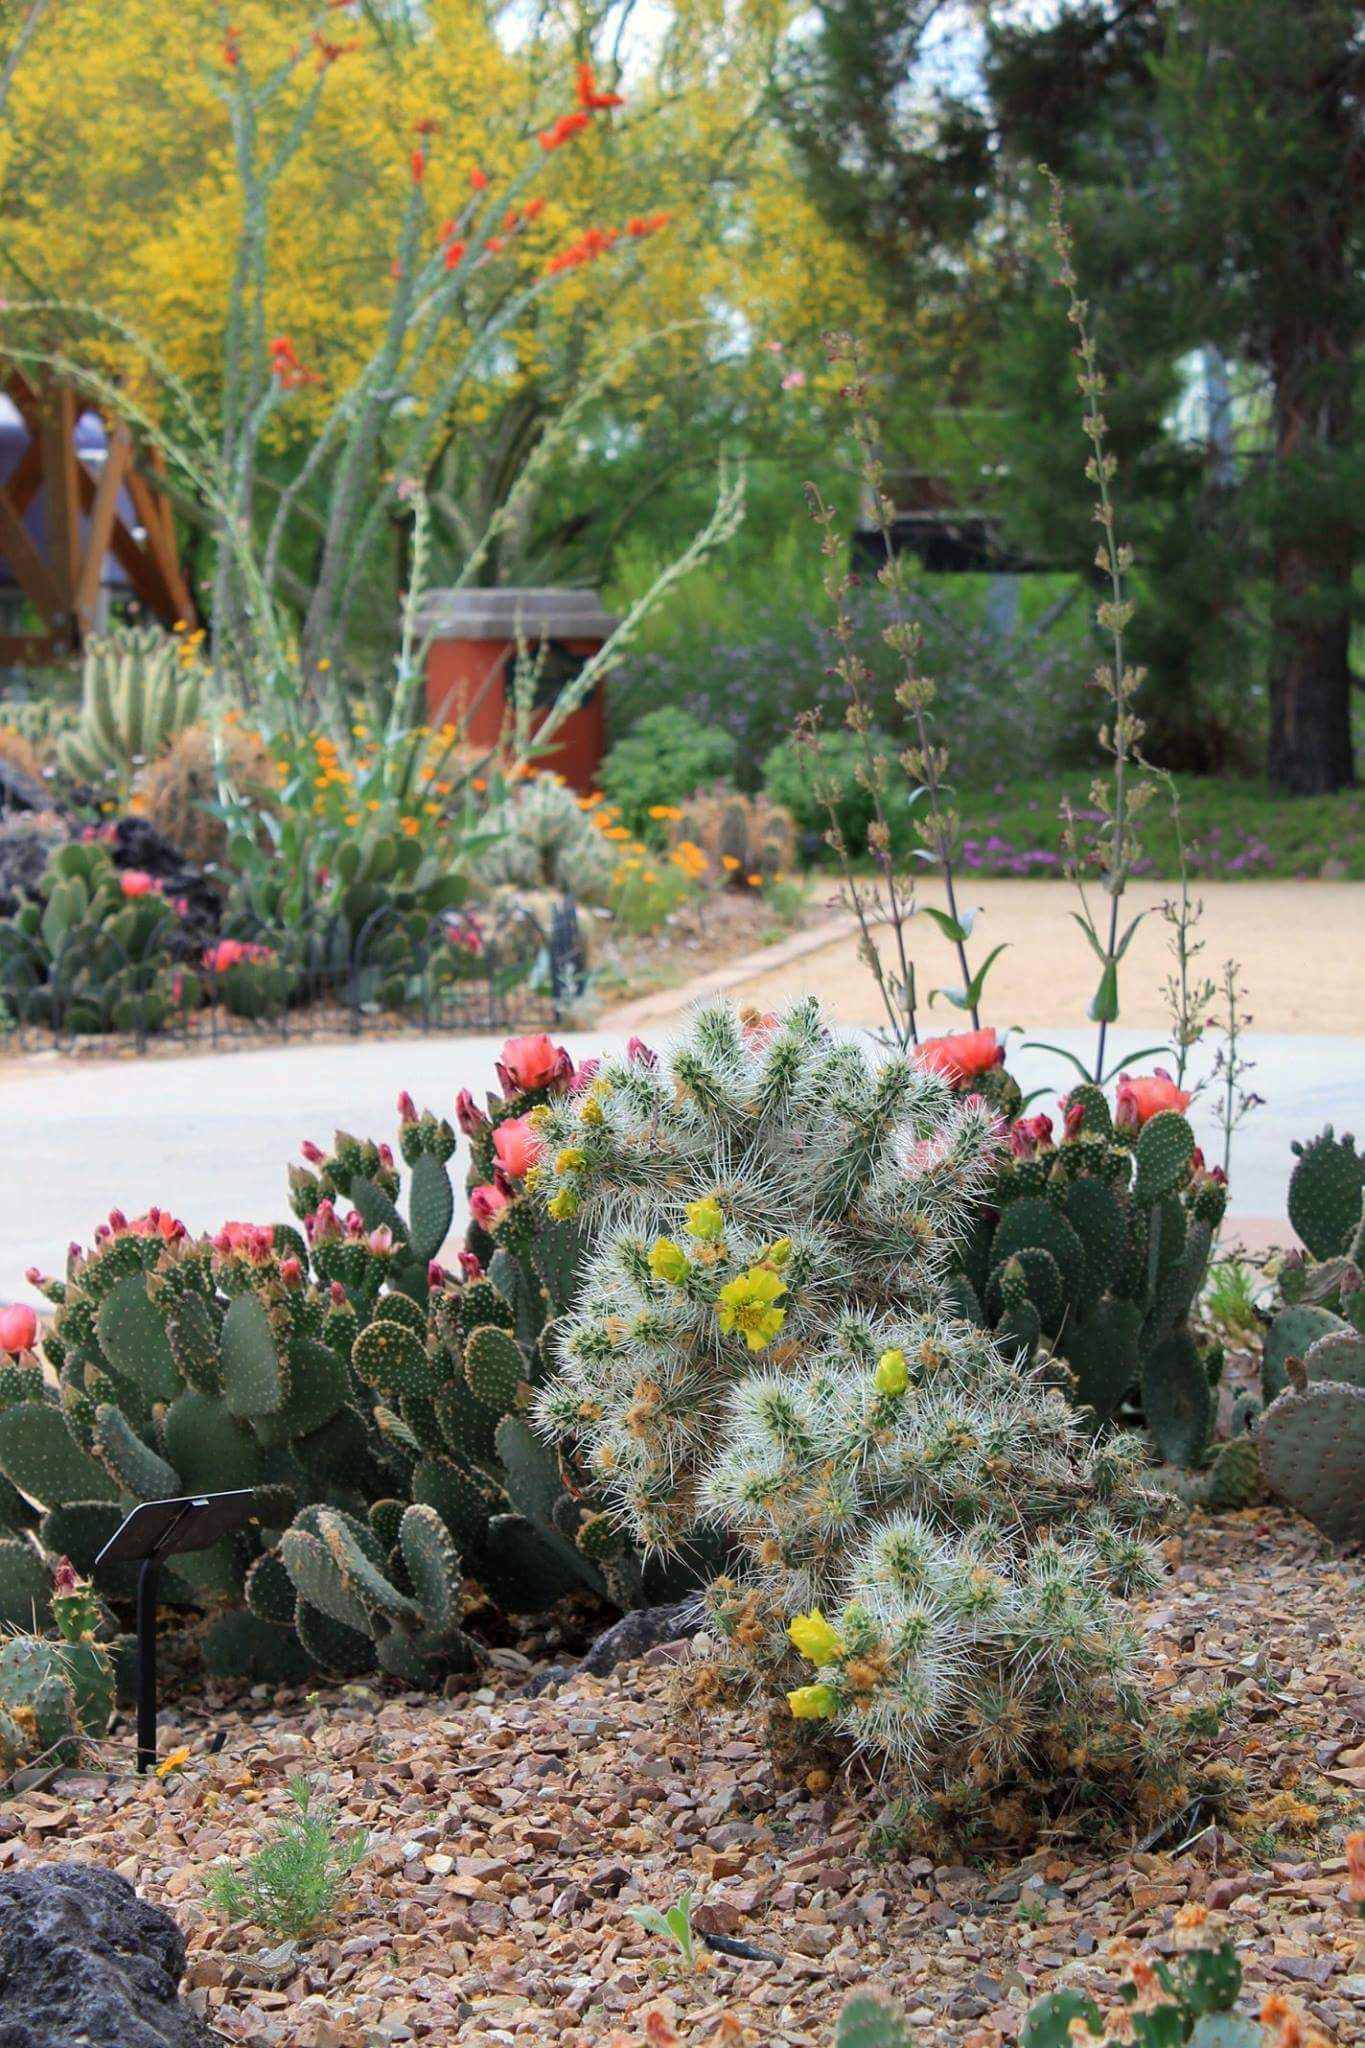 May 8, 2015 is National Public Gardens Day! Come celebrate at the Botanical Gardens at the ...